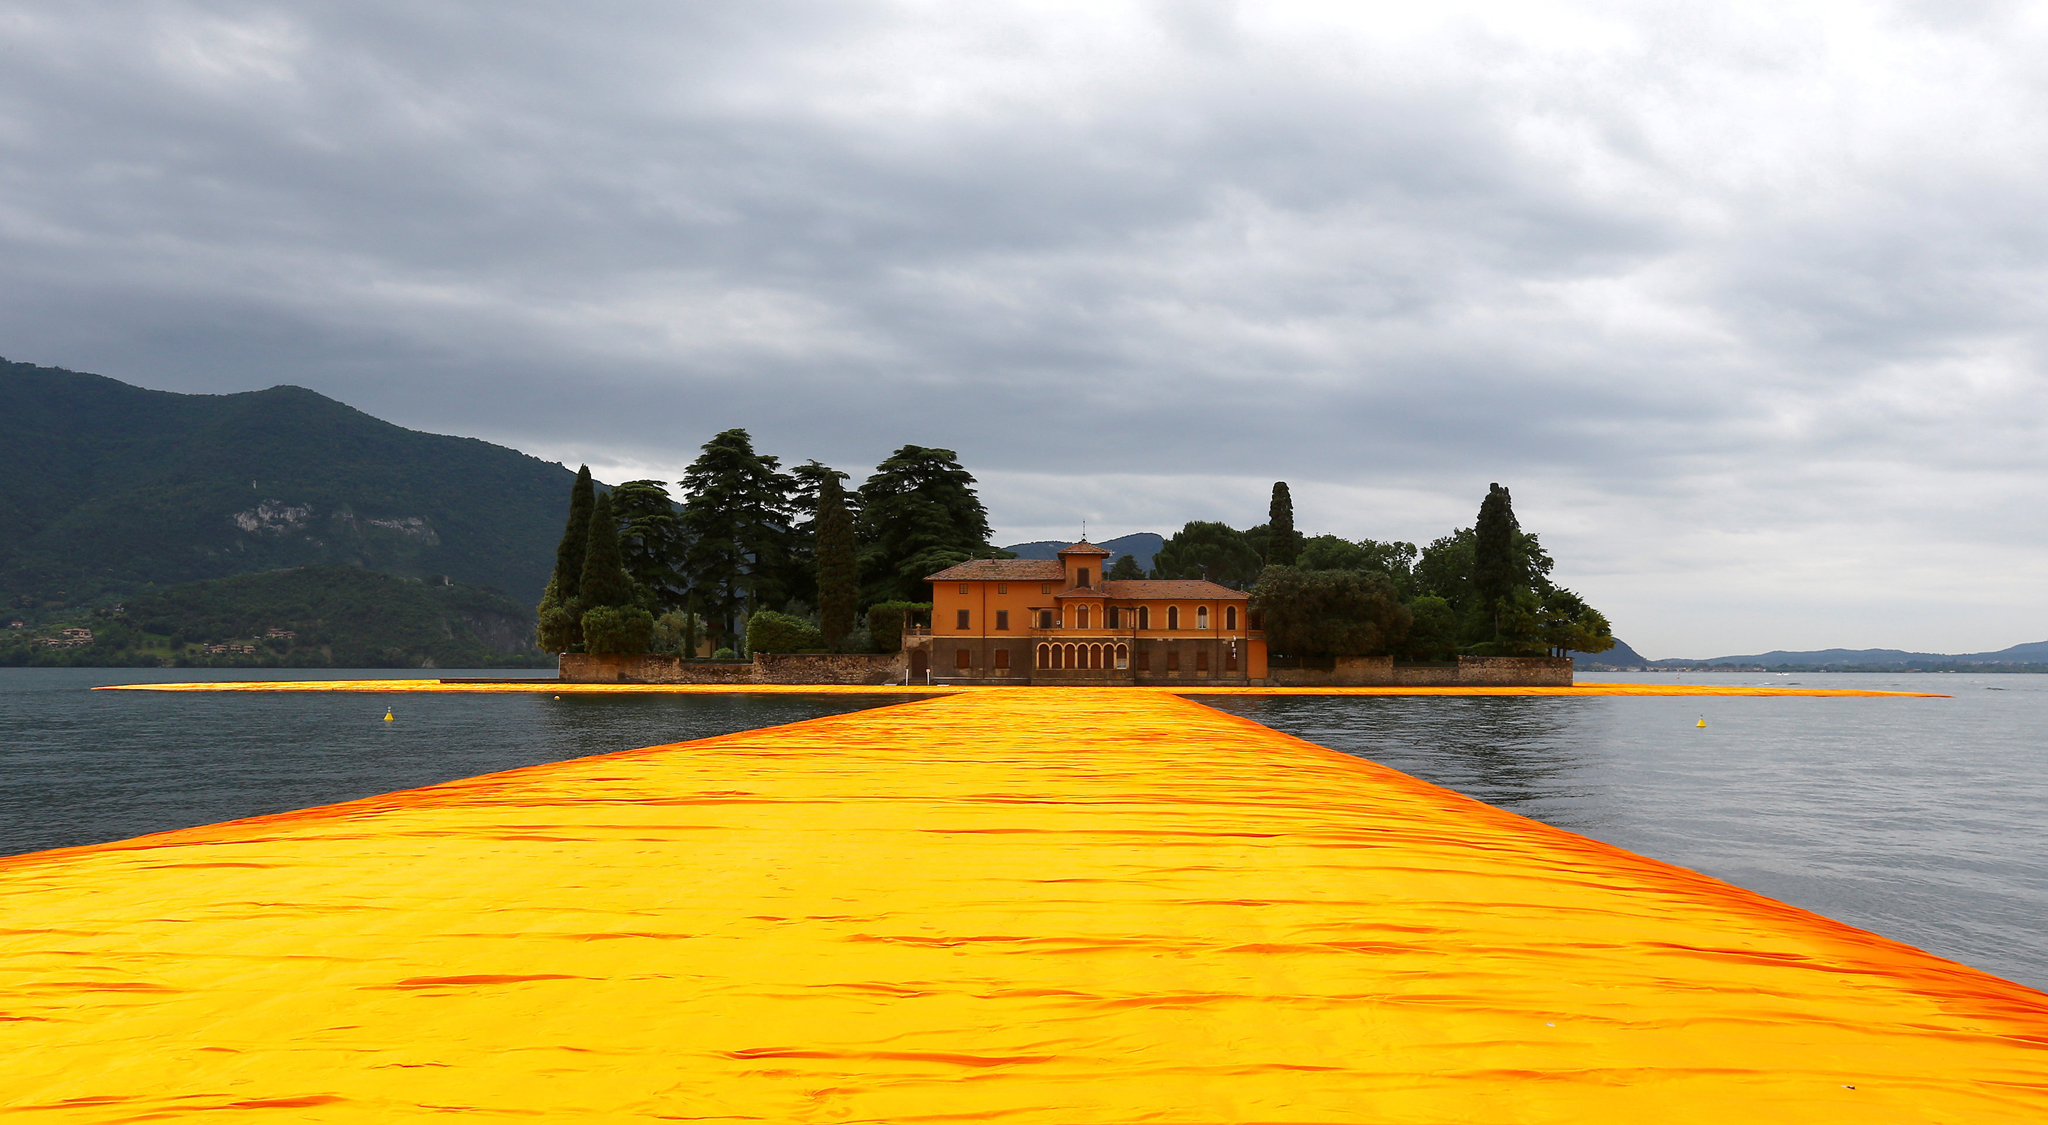 A view from the installation 'The Floating Piers' by Bulgarian-born artist Christo Vladimirov Yavachev known as Christo, on the Lake Iseo, northern Italy, June 16, 2016.REUTERS/Stefano Rellandini